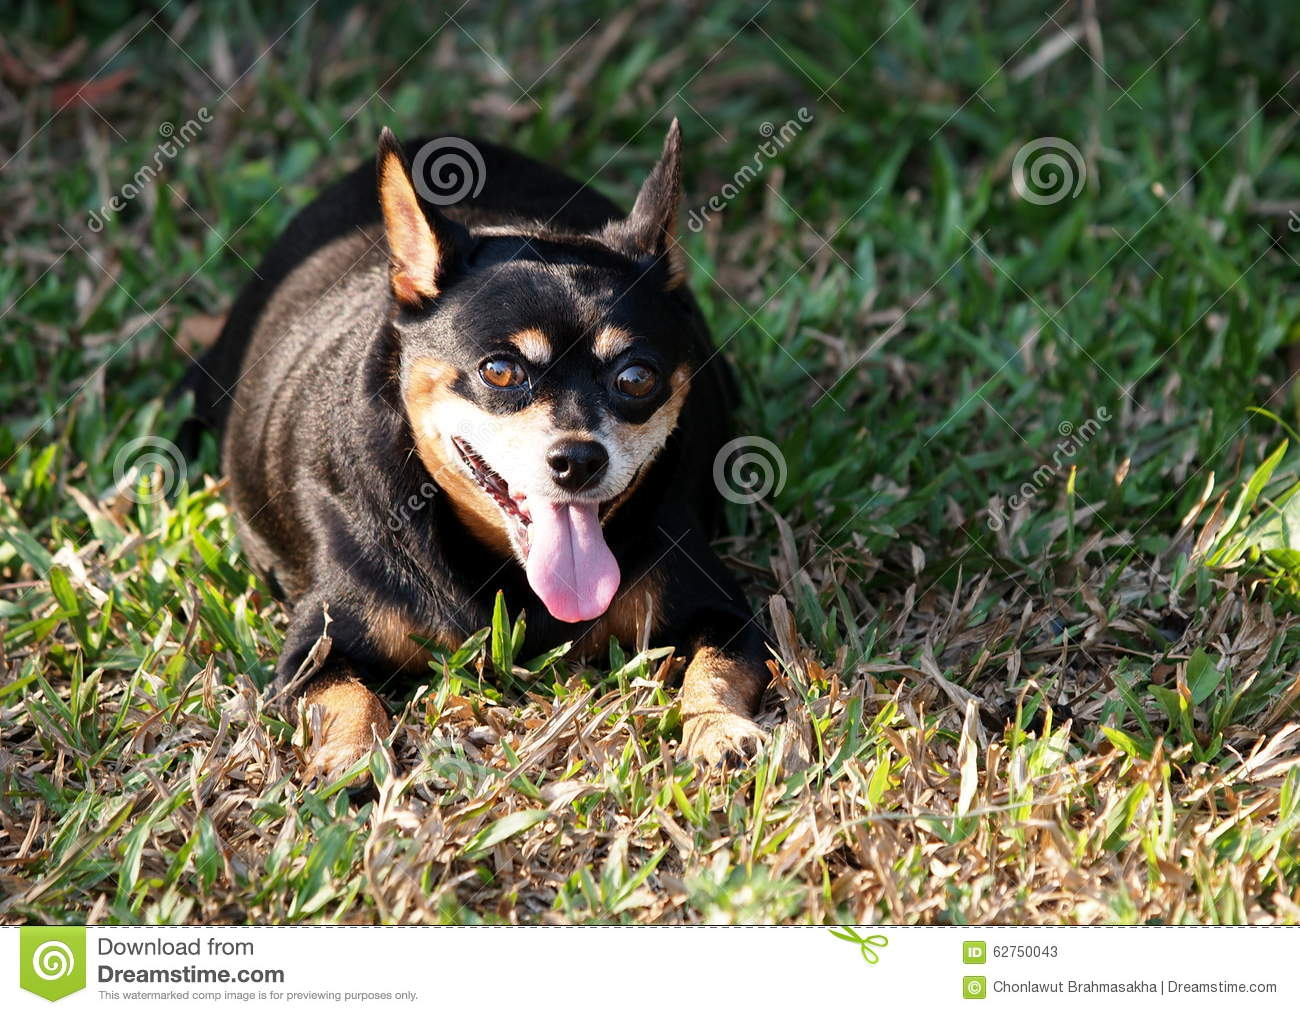 Cool Black Chubby Adorable Dog - black-fat-miniature-pinscher-portraits-happy-lovely-cute-dog-smiling-laying-green-grass-floor-making-funny-face-62750043  You Should Have_764431  .jpg